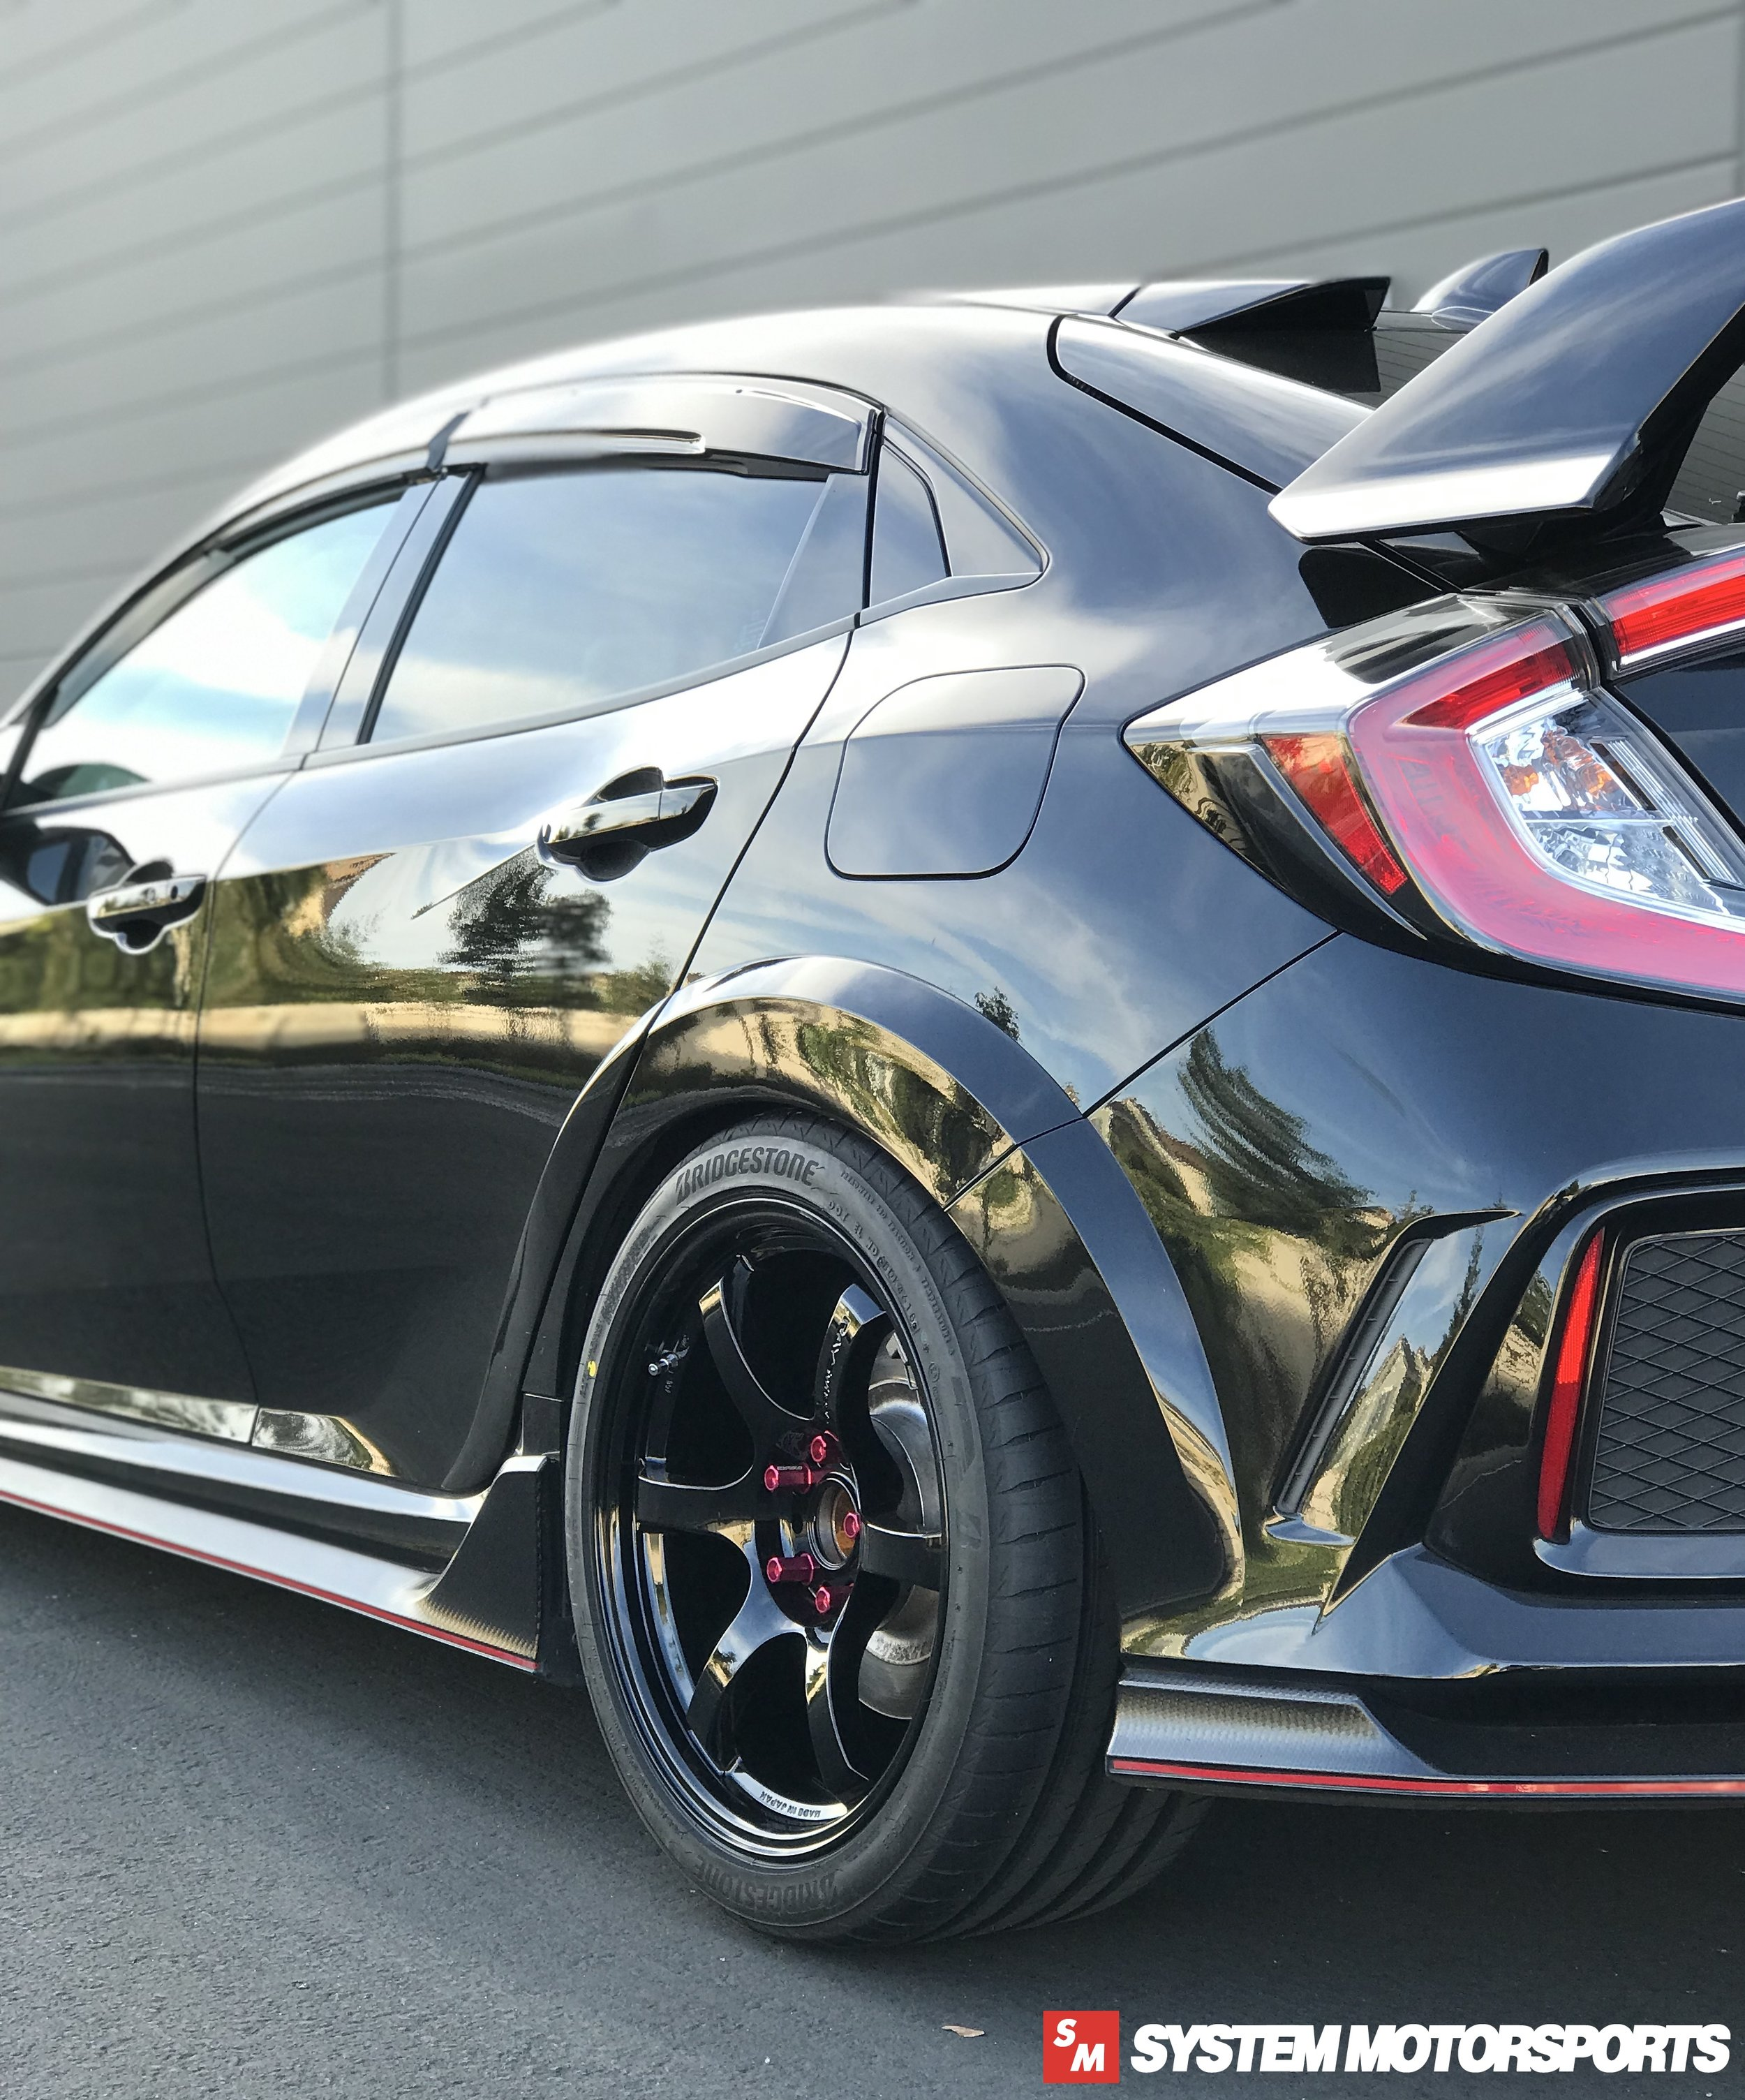 System Motorsports FK8 Civic Type R on Rays Gramlights 57DR 18x9.5 +38 5x120 in Glossy Black!